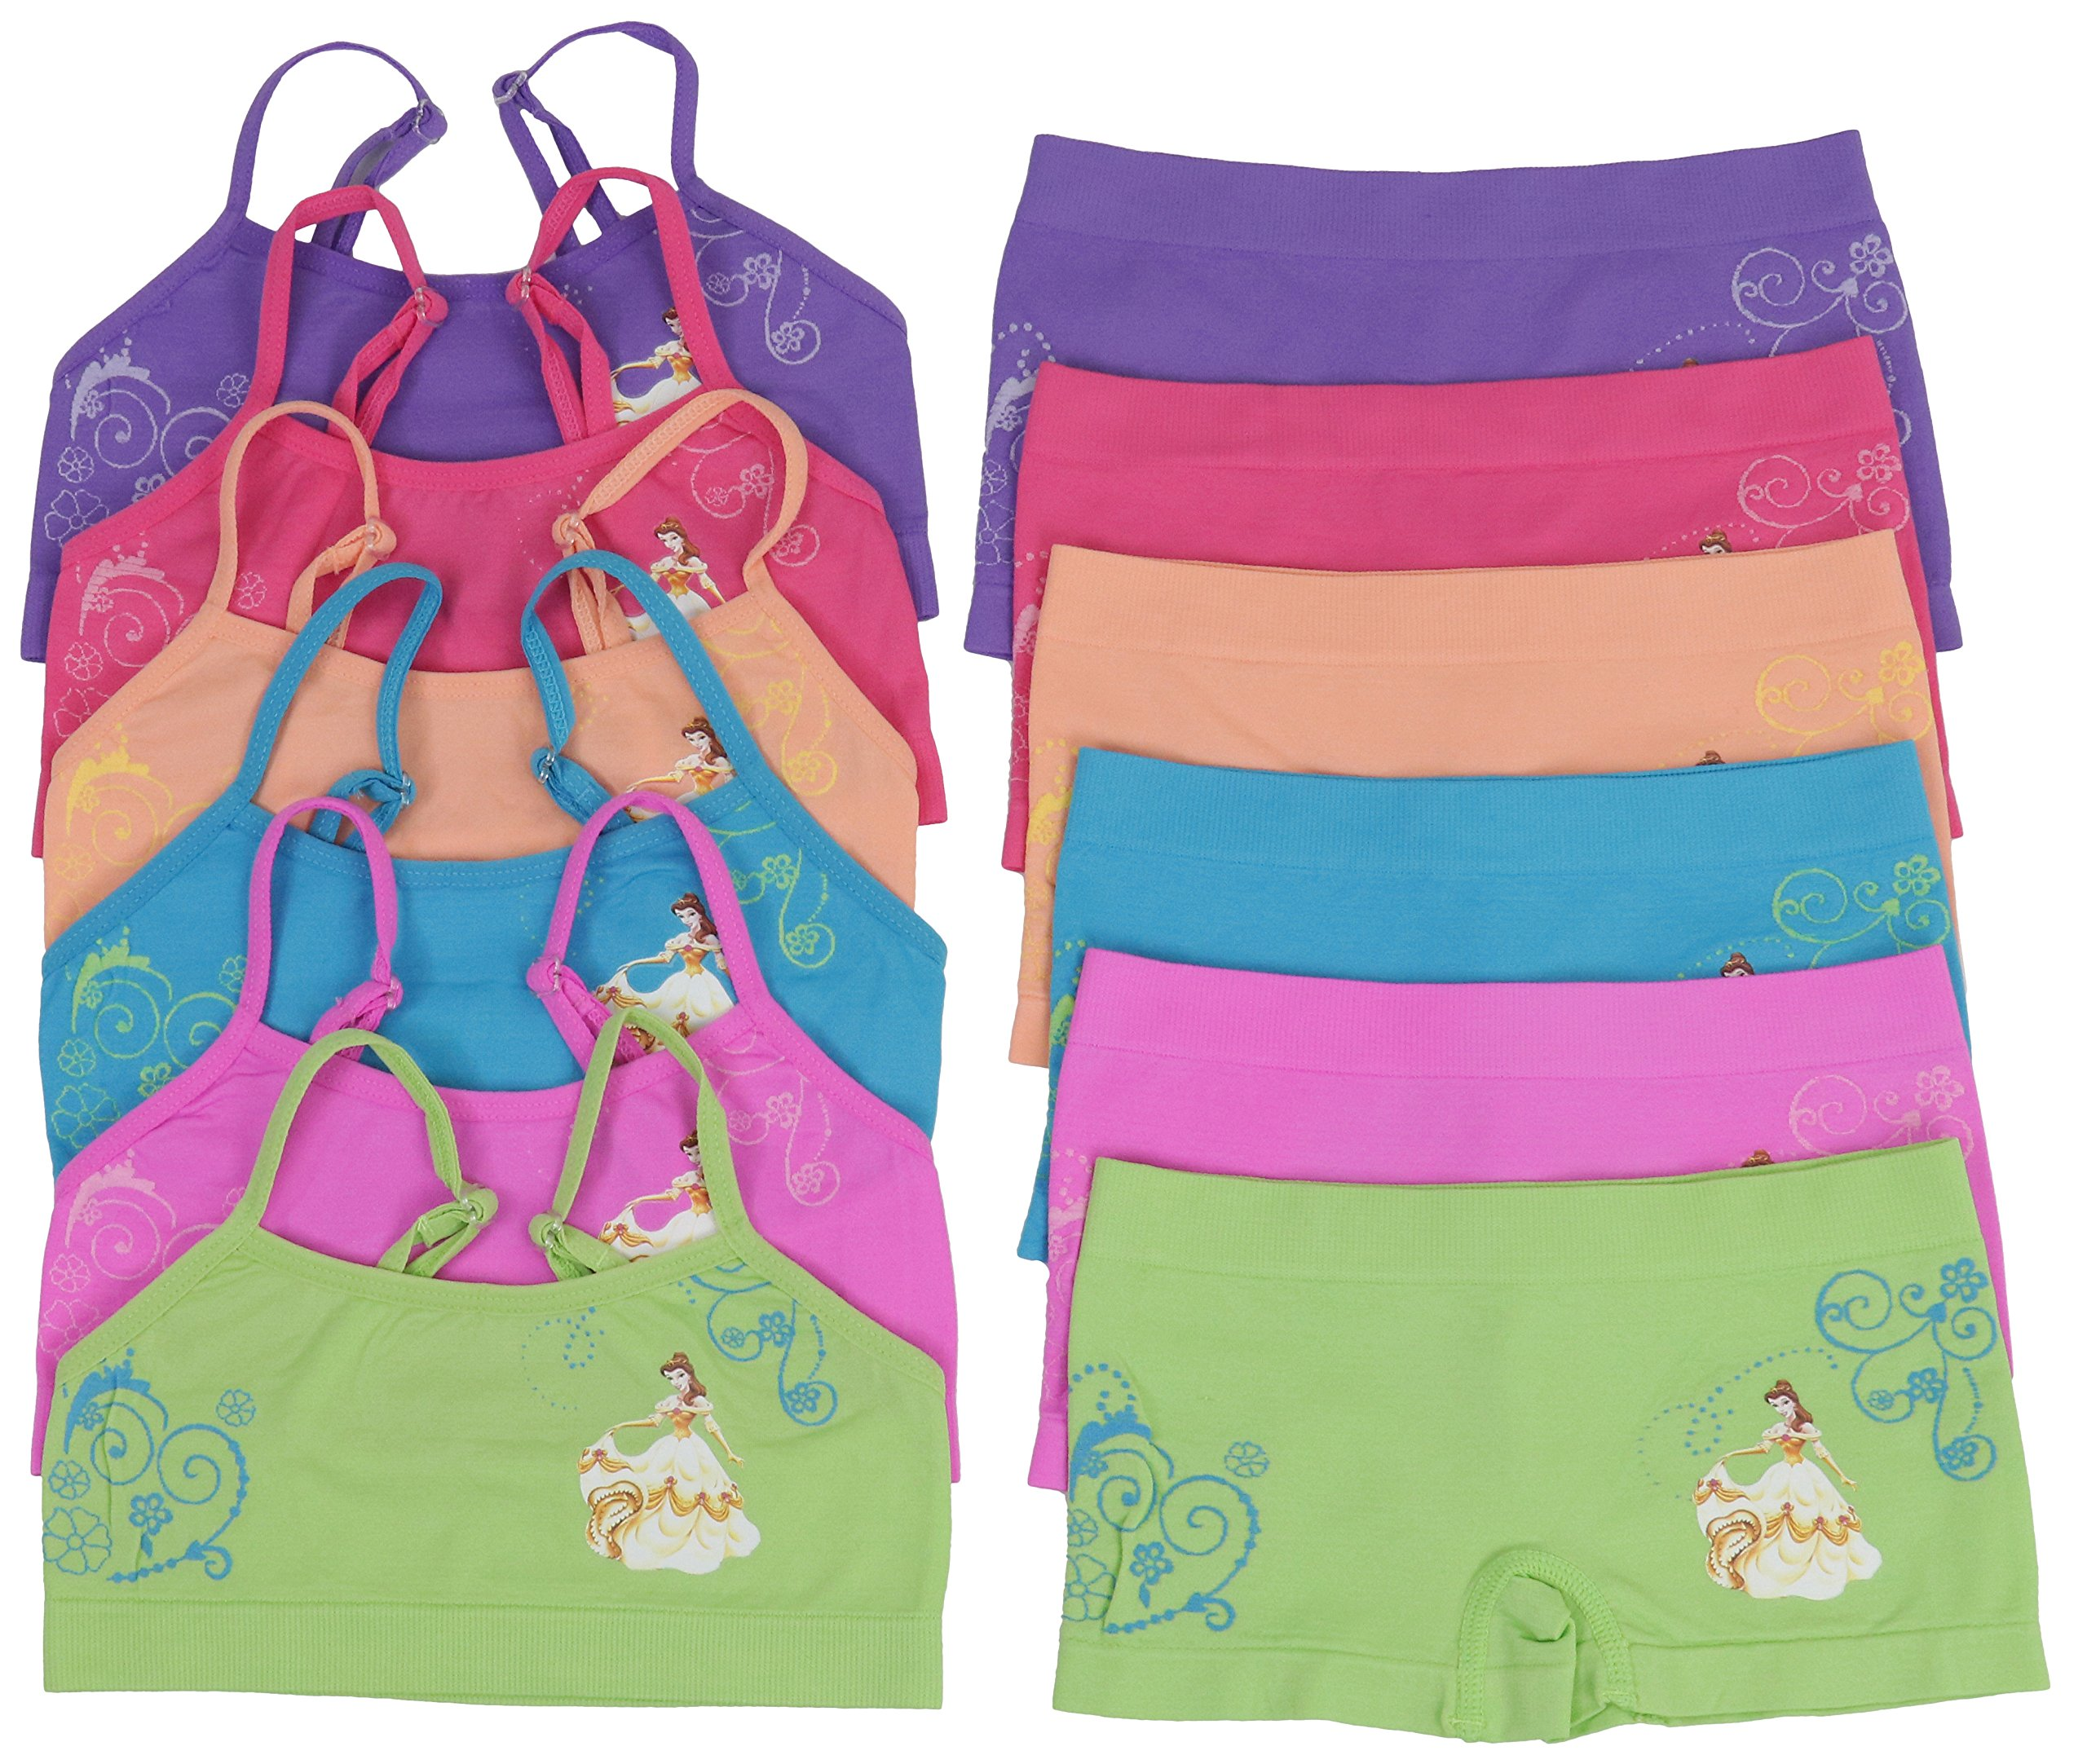 ToBeInStyle Girls' Pack of 6 Set of Matching Bras & Boyshorts (Medium (Ages 7-11), Princess of Beauty)